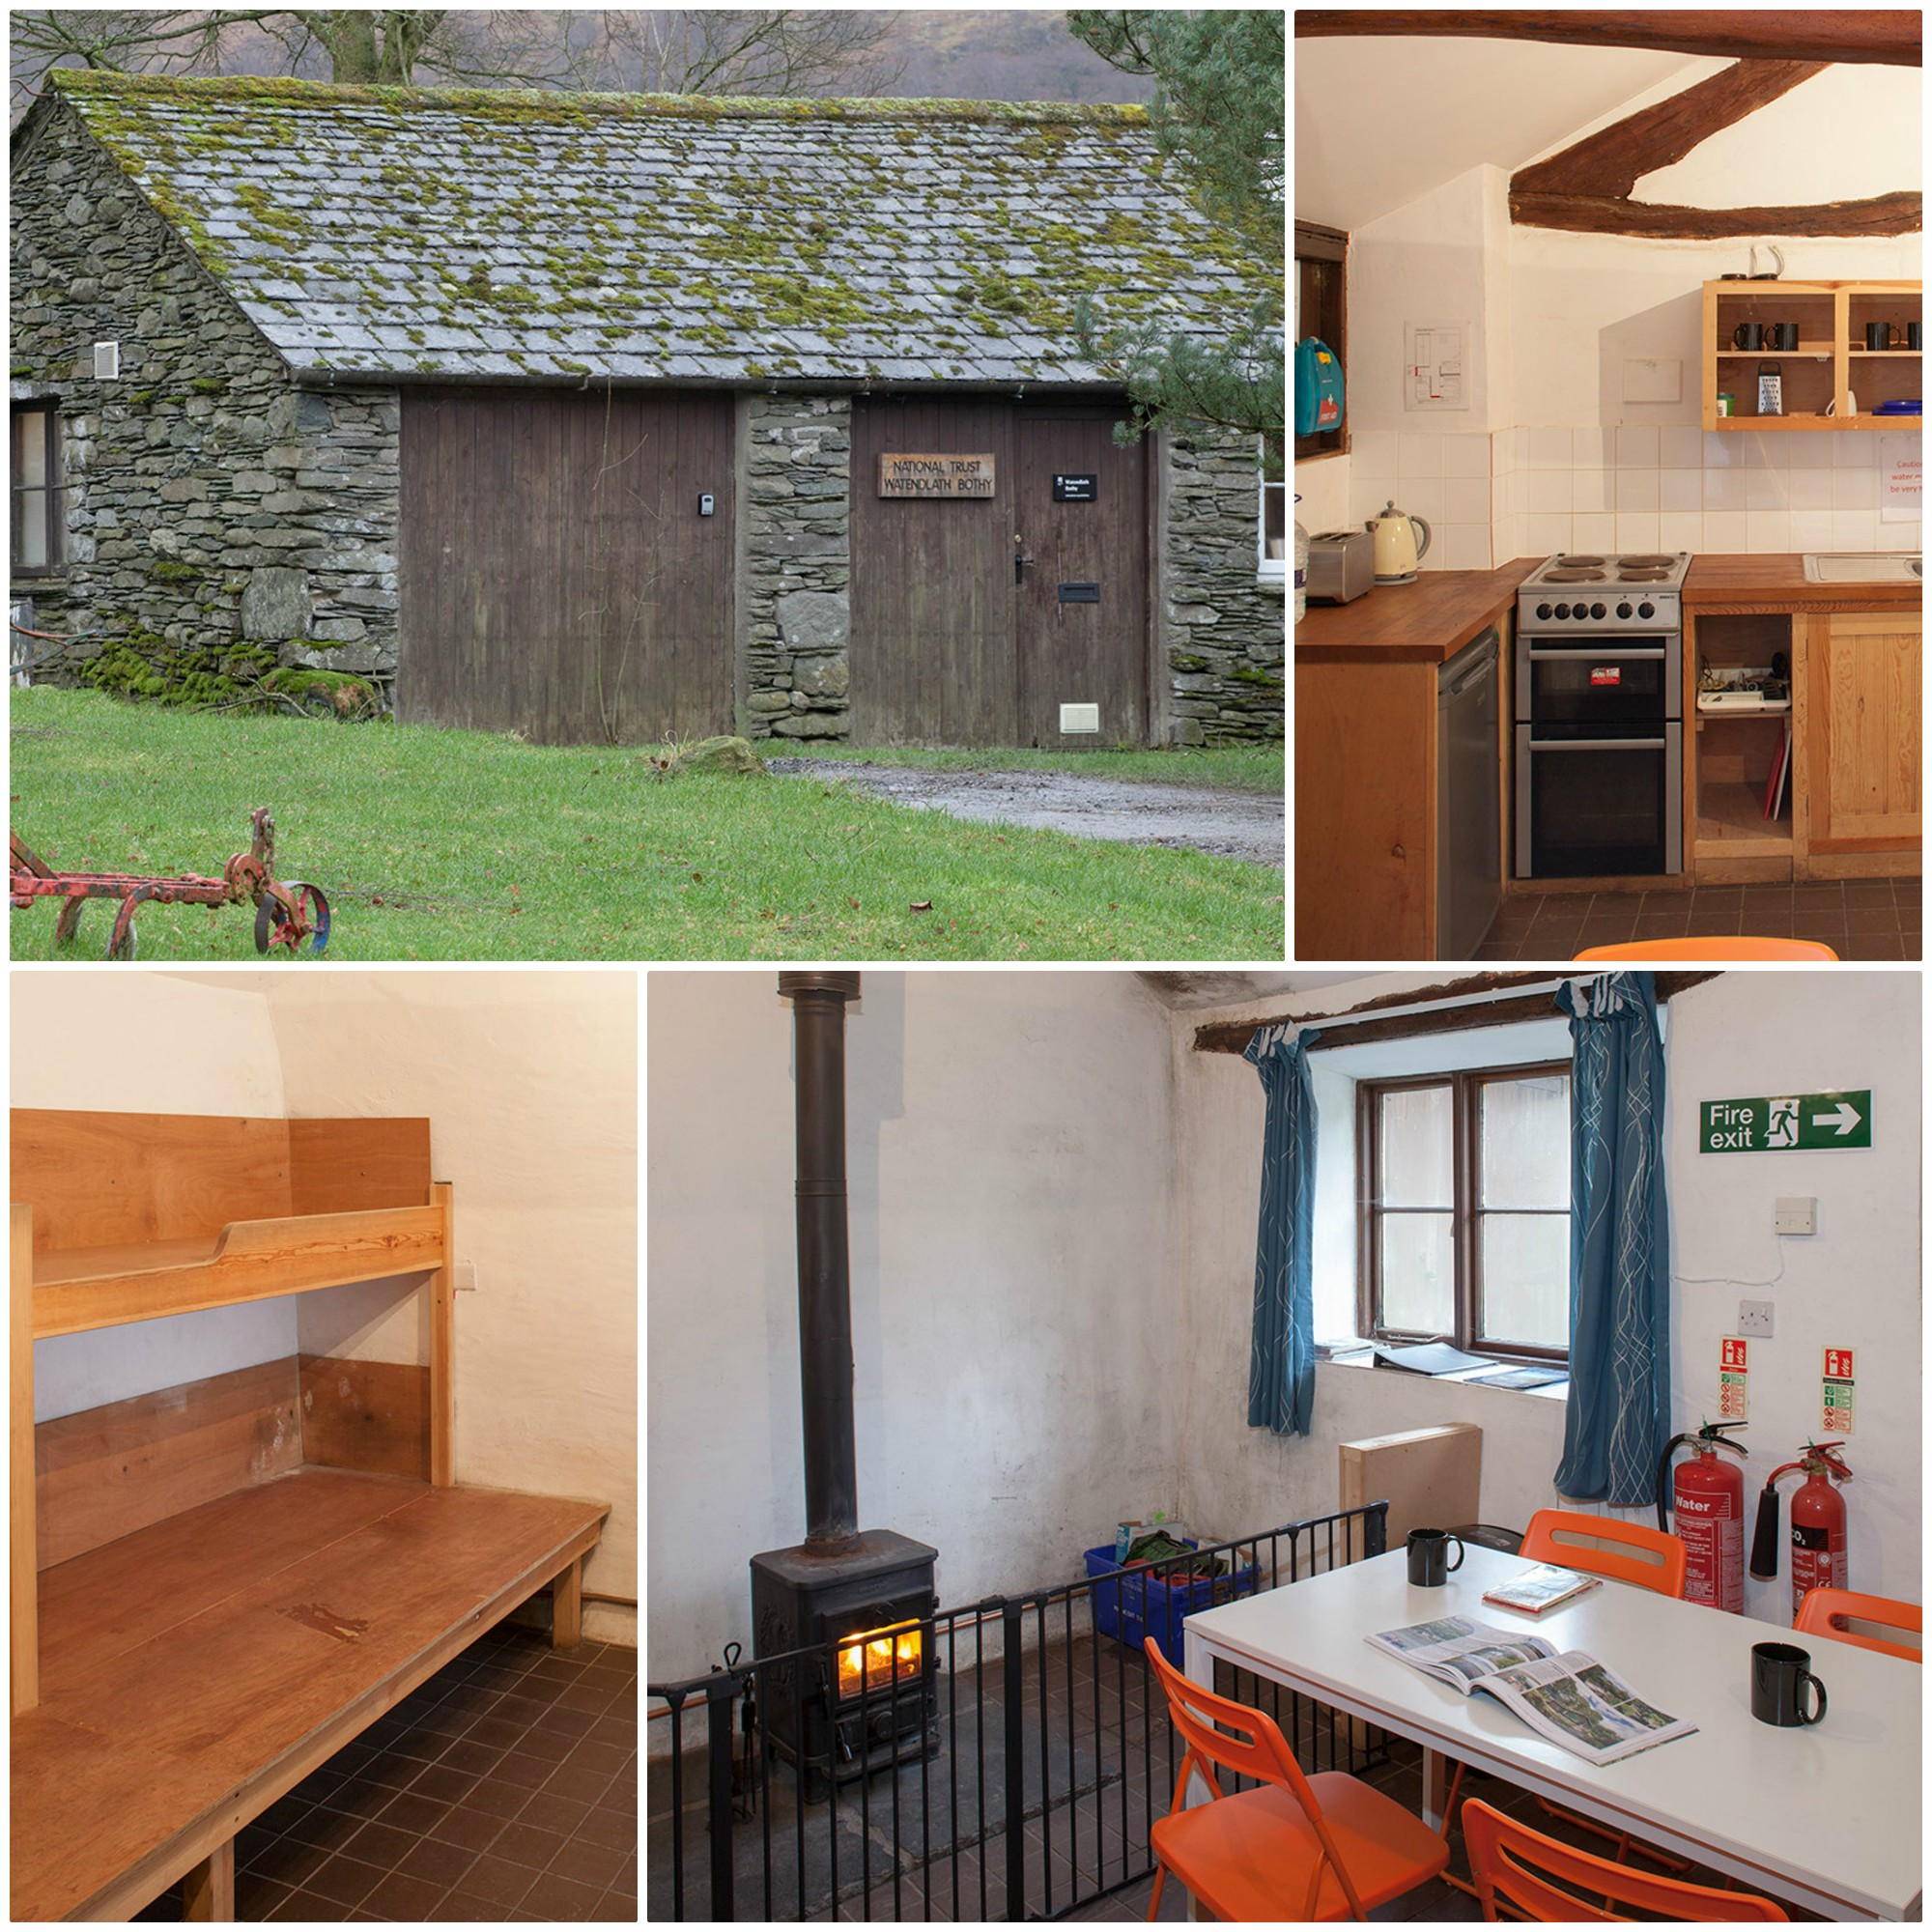 National Trust owned Bothy  - sleeps 6 with wood-burning stove